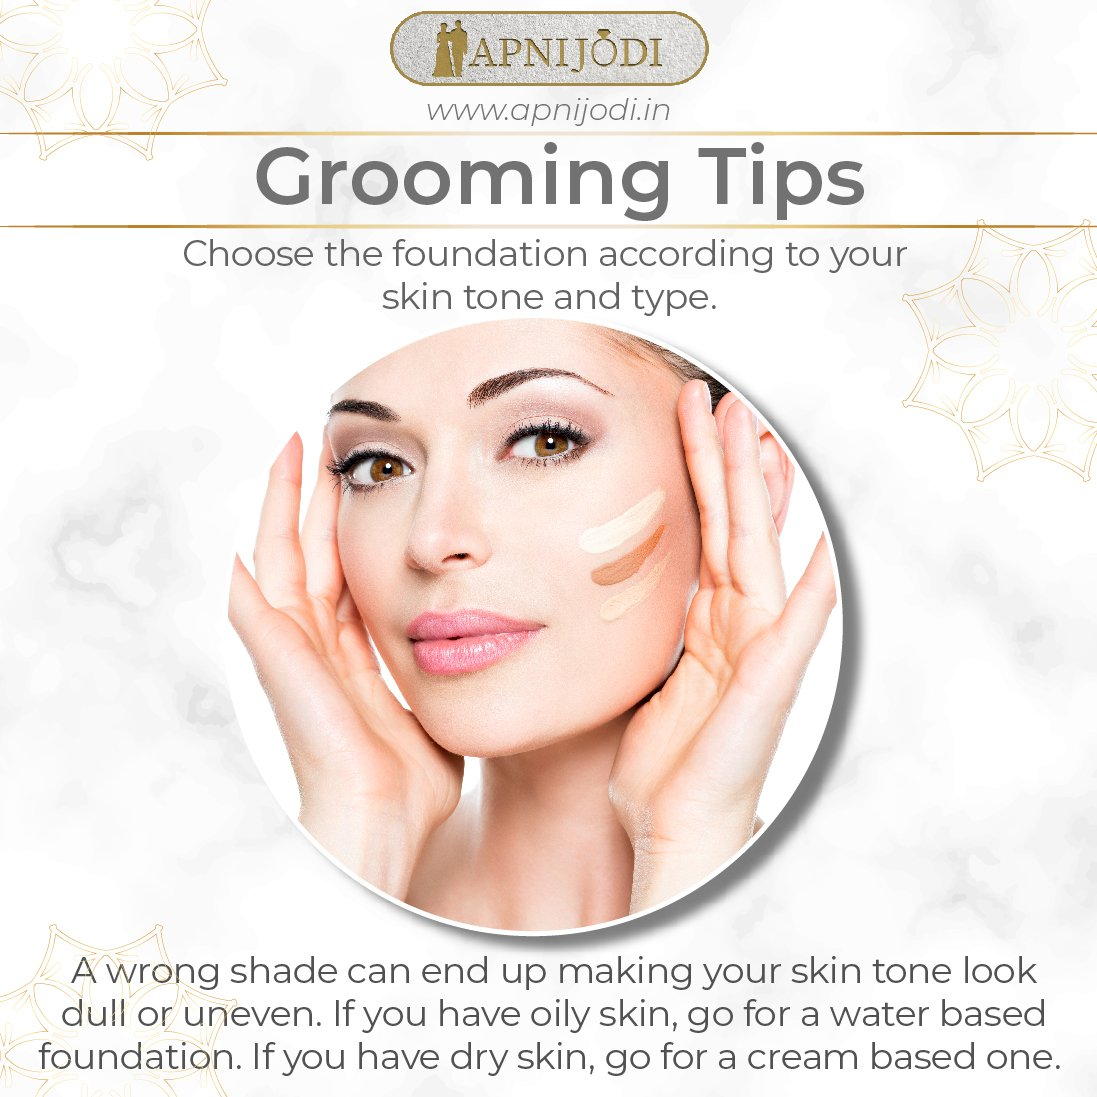 Finding a perfect foundation for your particular skin tone may be difficult but it is extremely important for your special day for making your skin look gorgeous and perfect. #love #relationship #wedding #groom #groomingtips #foundation #skintone #gorgeous #perfect #apnijodi